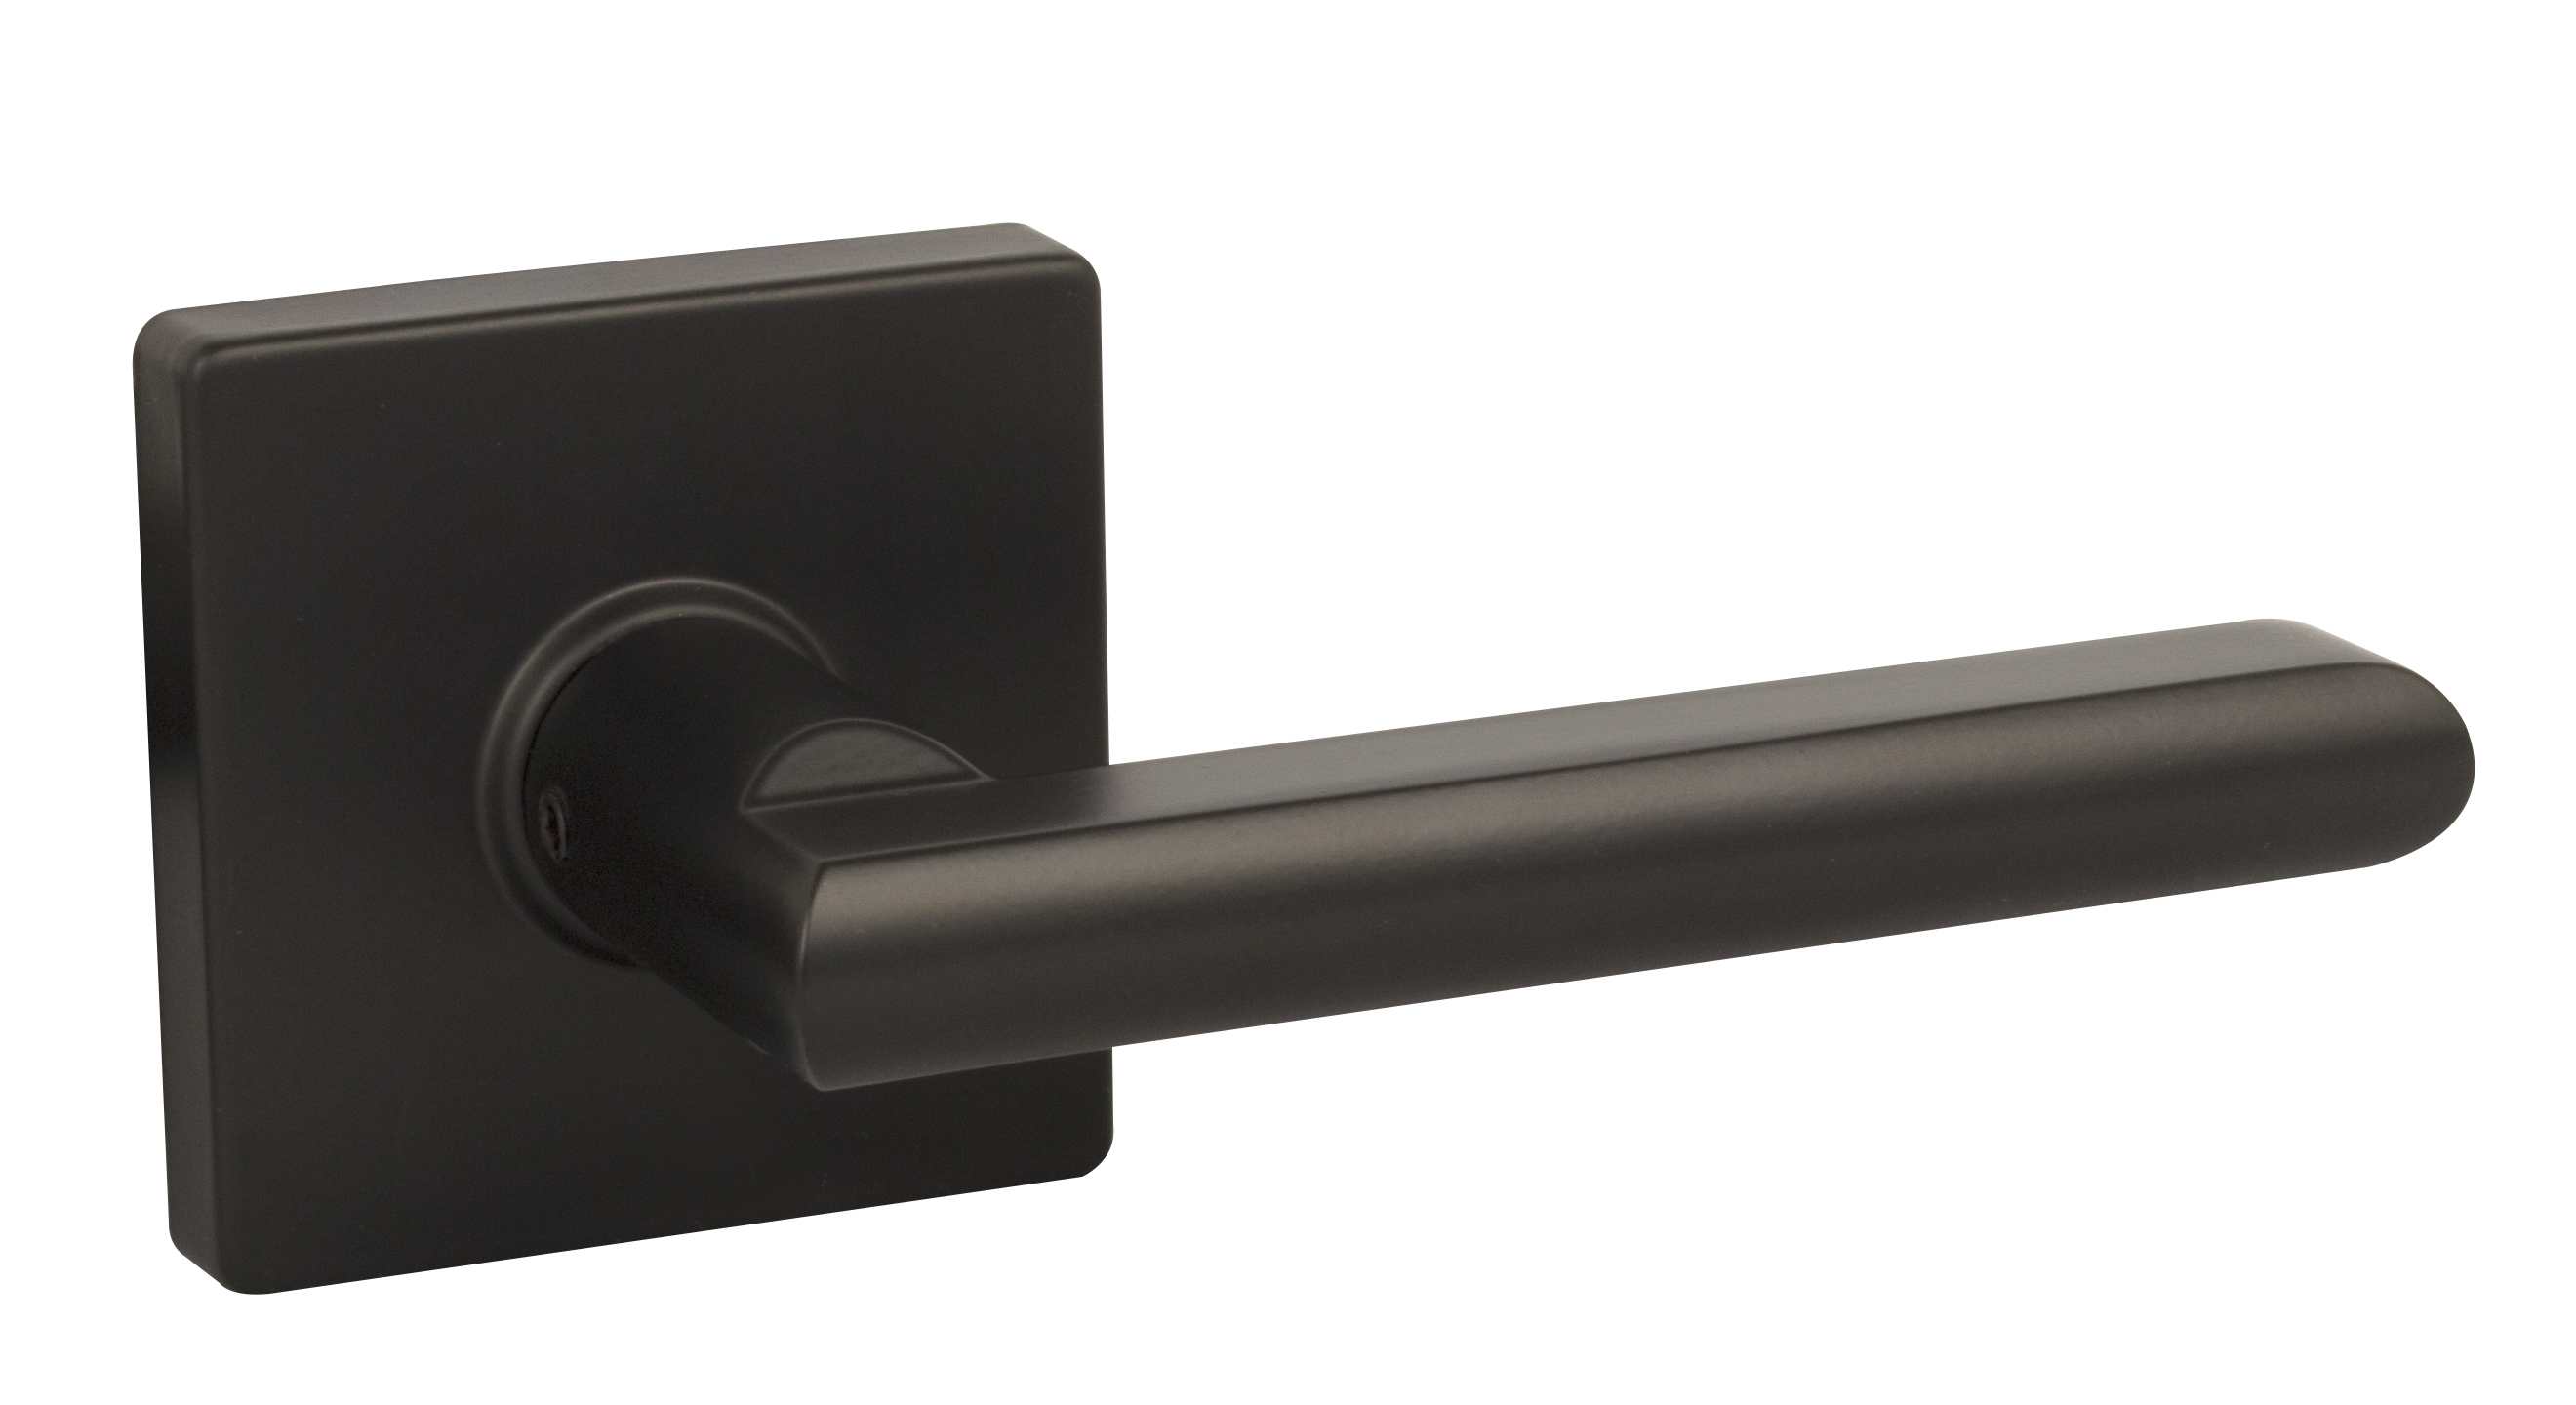 Vega Square Rose Lever Taymor Usa